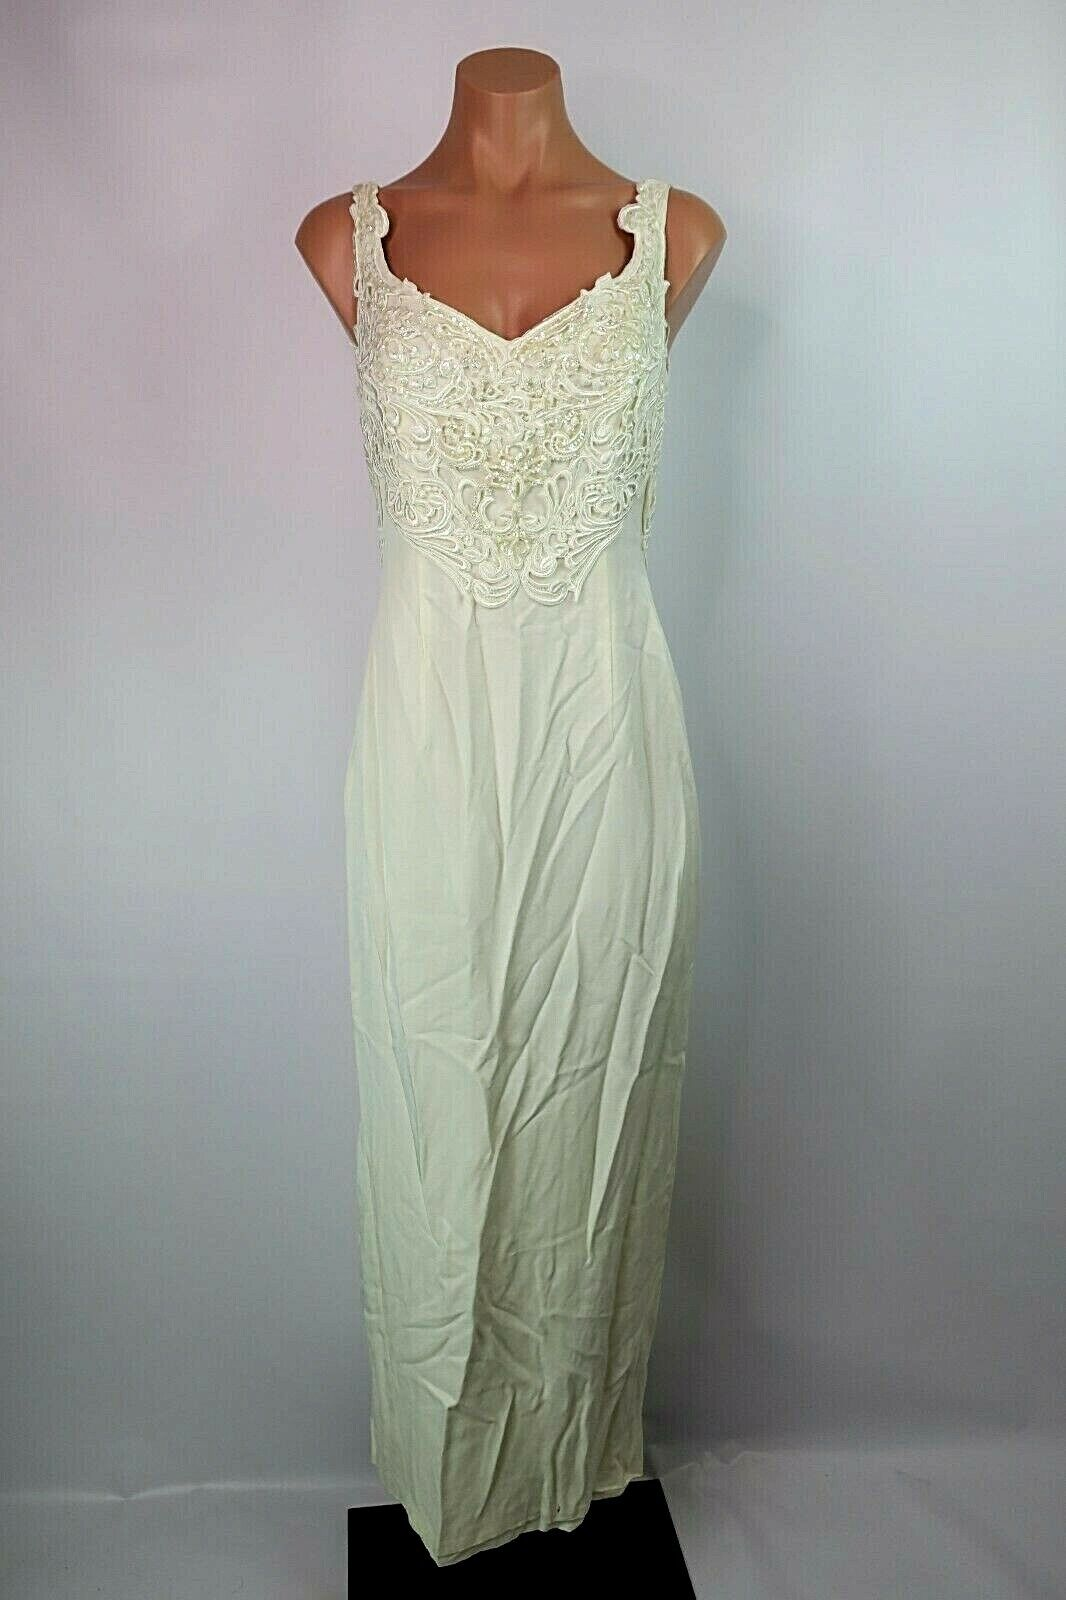 VTG Cache Ivory Pearl Wiggle Beaded Full Sequins Sleeveless Evening Wedding Gown